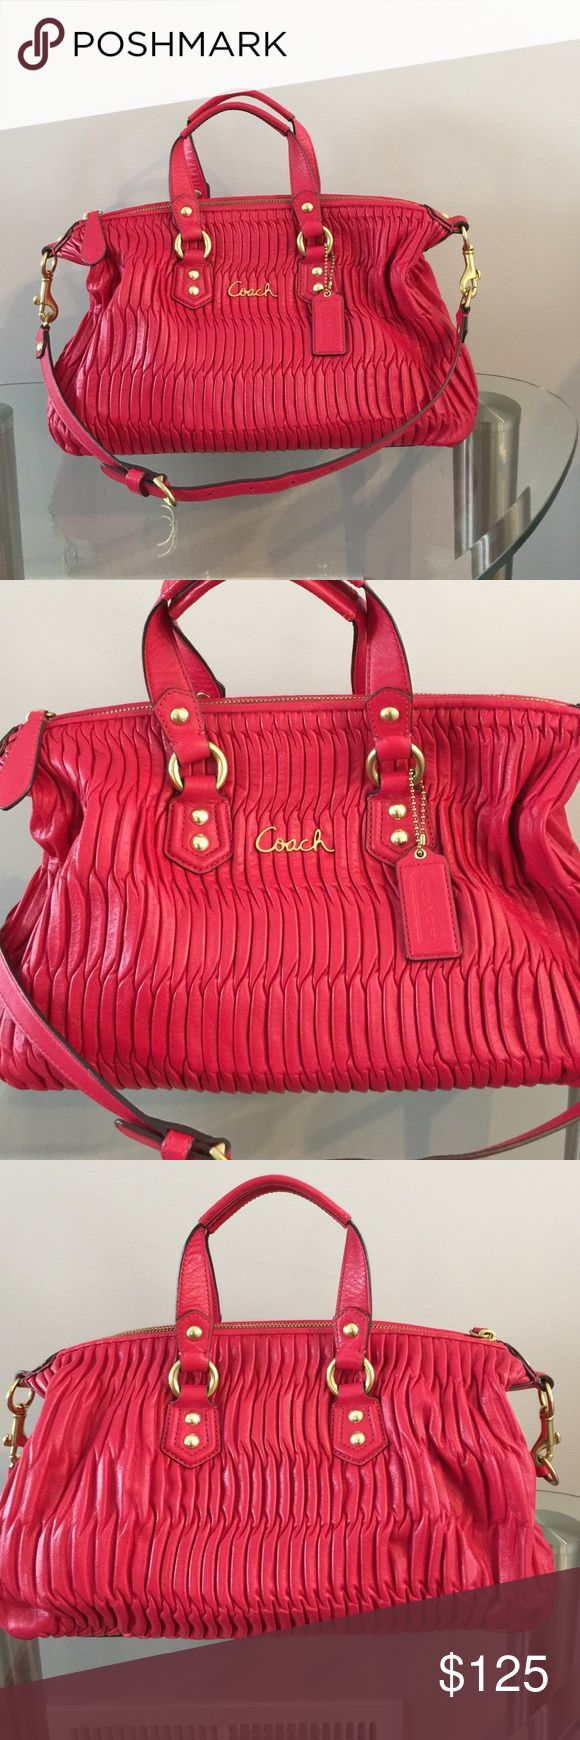 HOT PINK Medium leather Coach purse 👛 Used just a few times, in very good condition 12' long and 9'h. Coach Bags Satchels